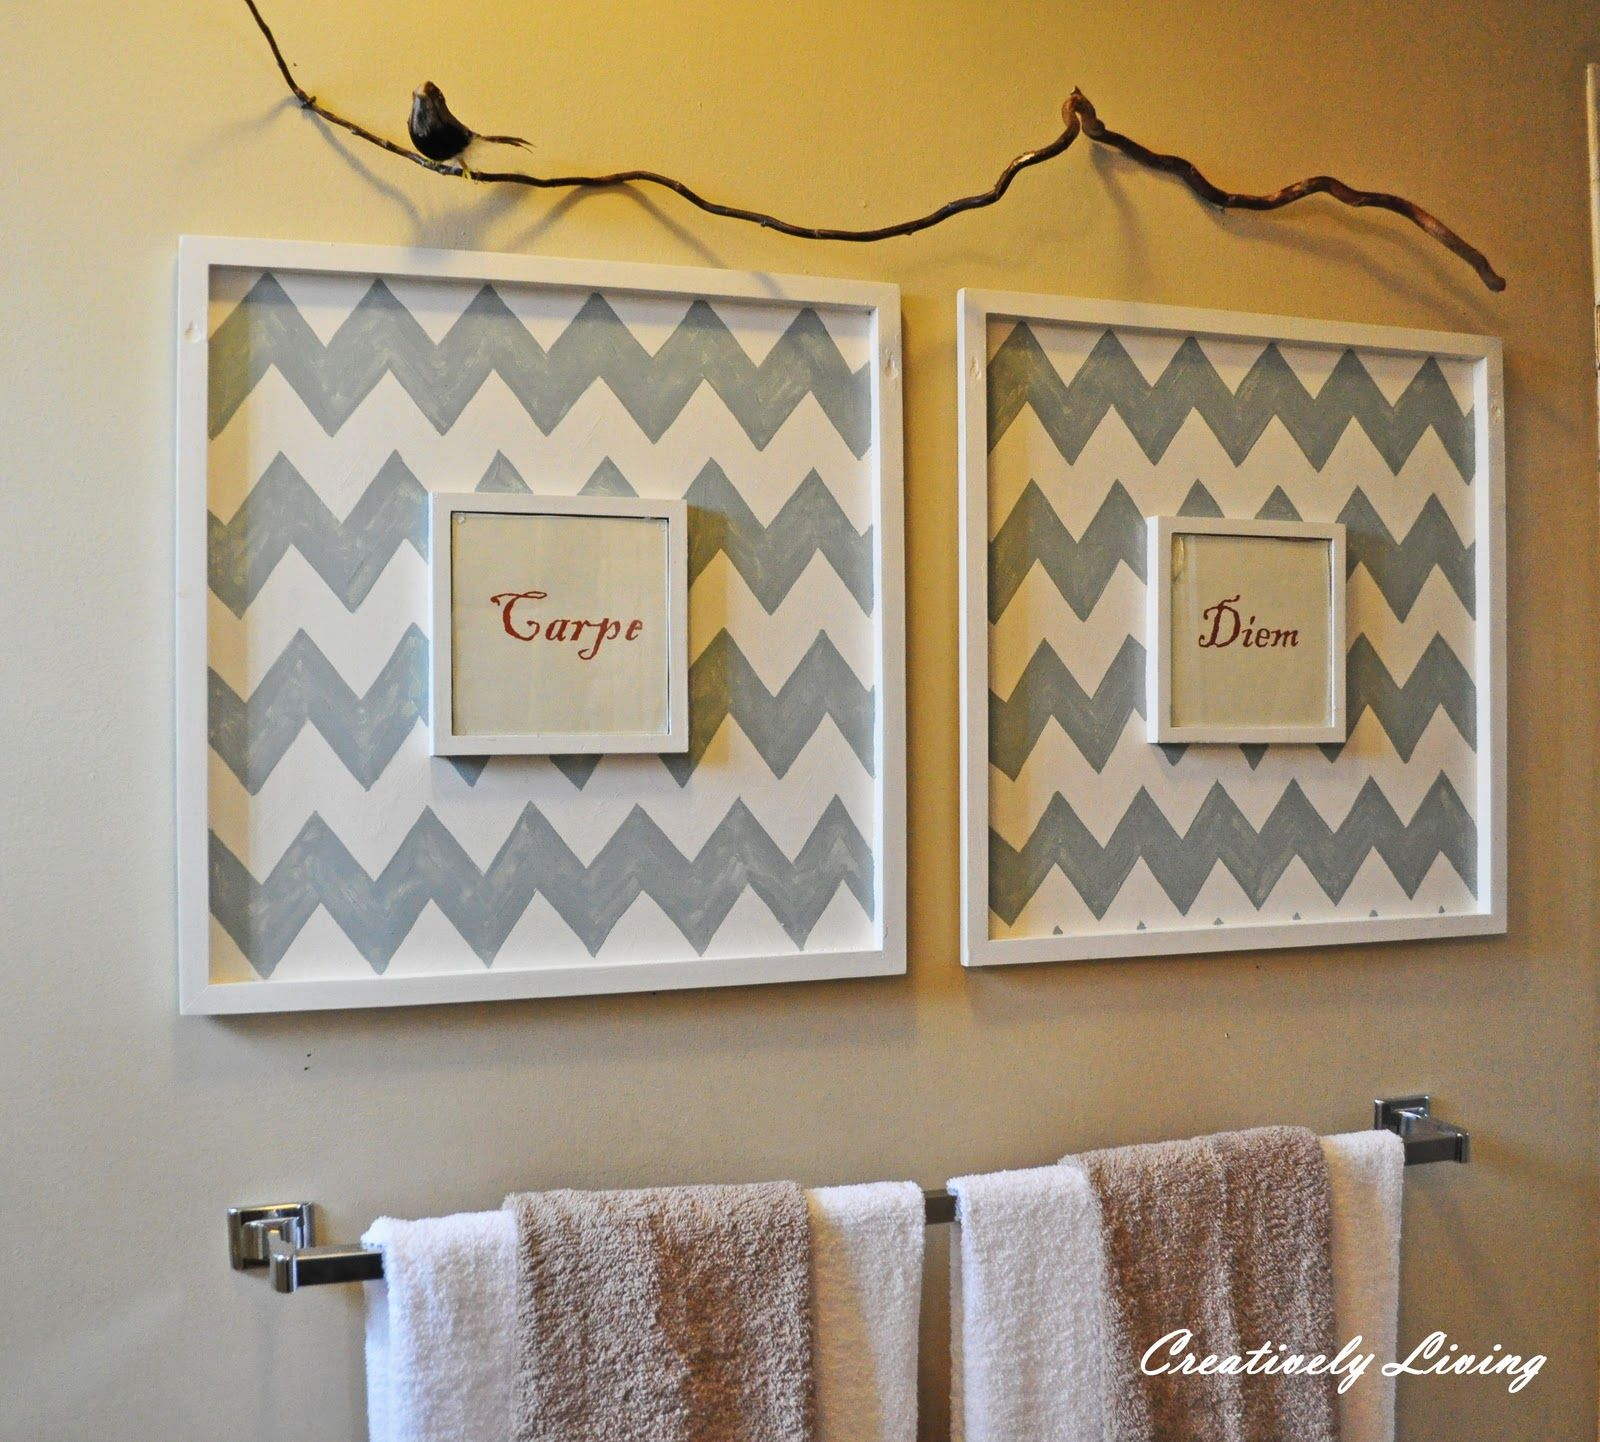 Bathroom wall decorations - Bathroom Wall Art